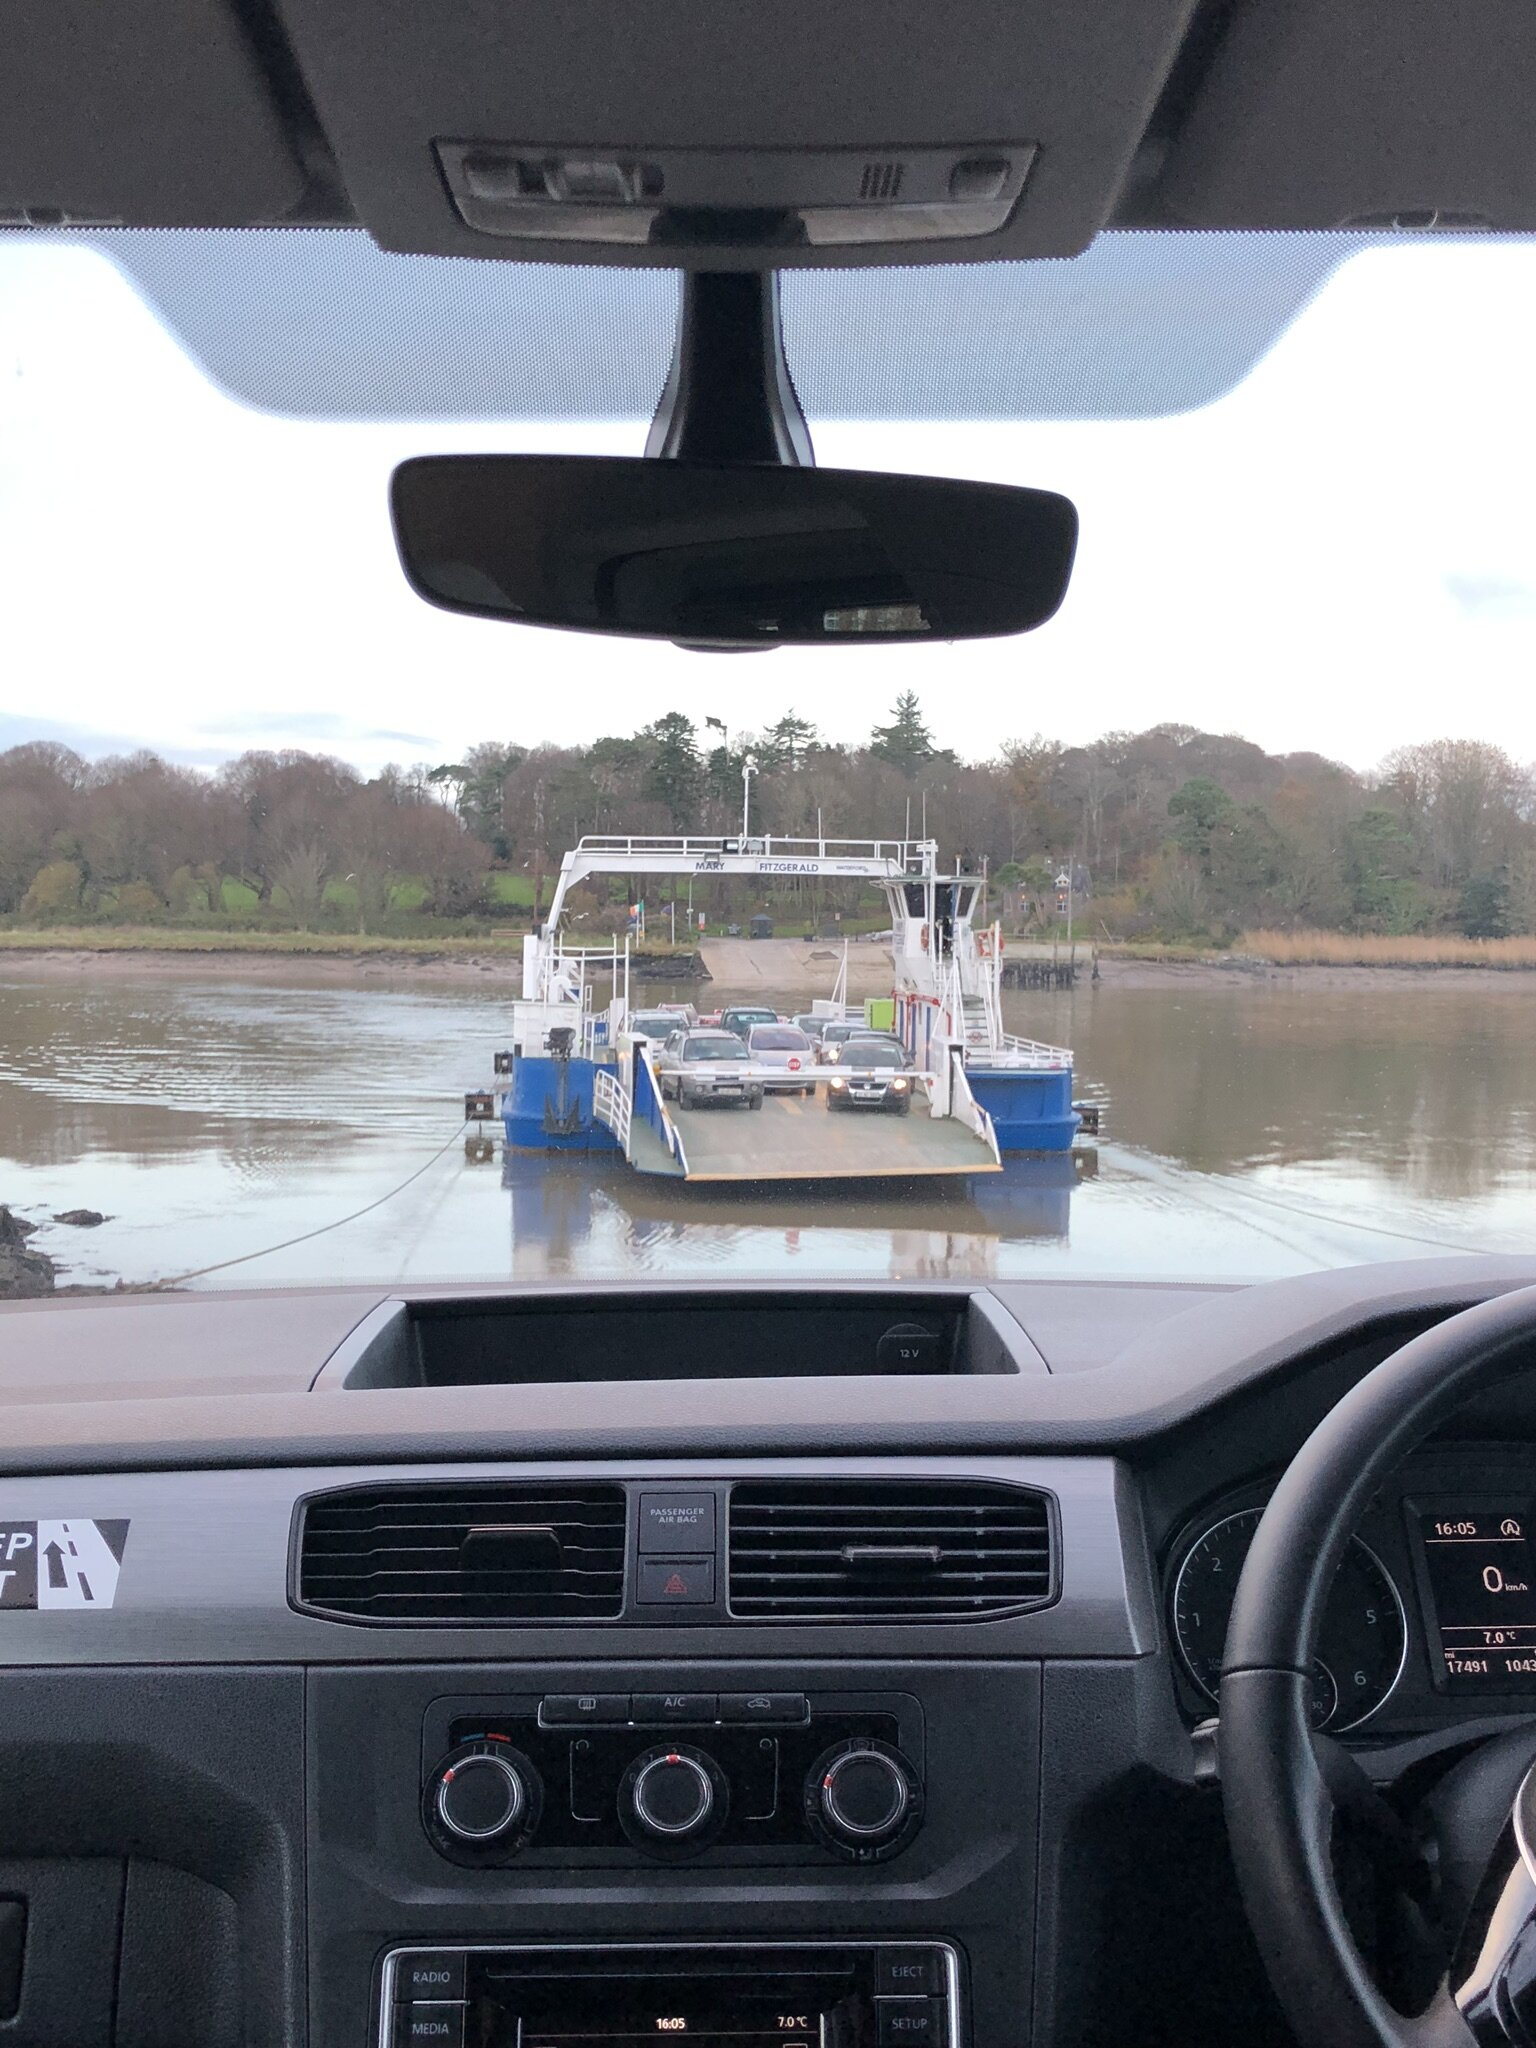 Here is the auto-ferry we took to the island where Waterford Castle is located.